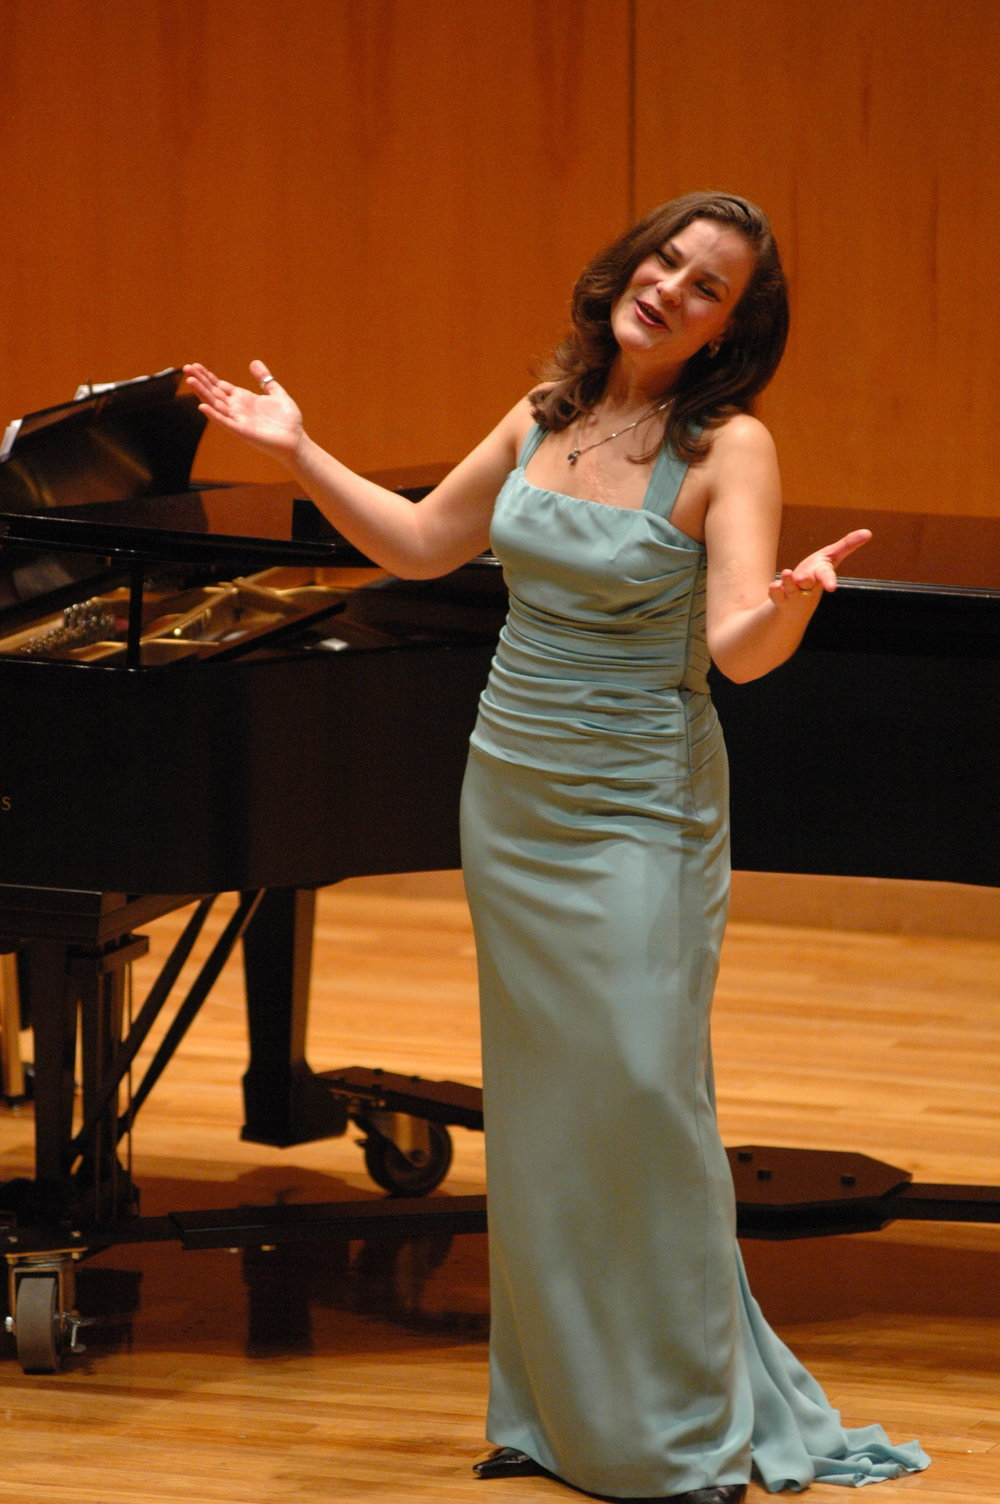 Recital at University of West Florida